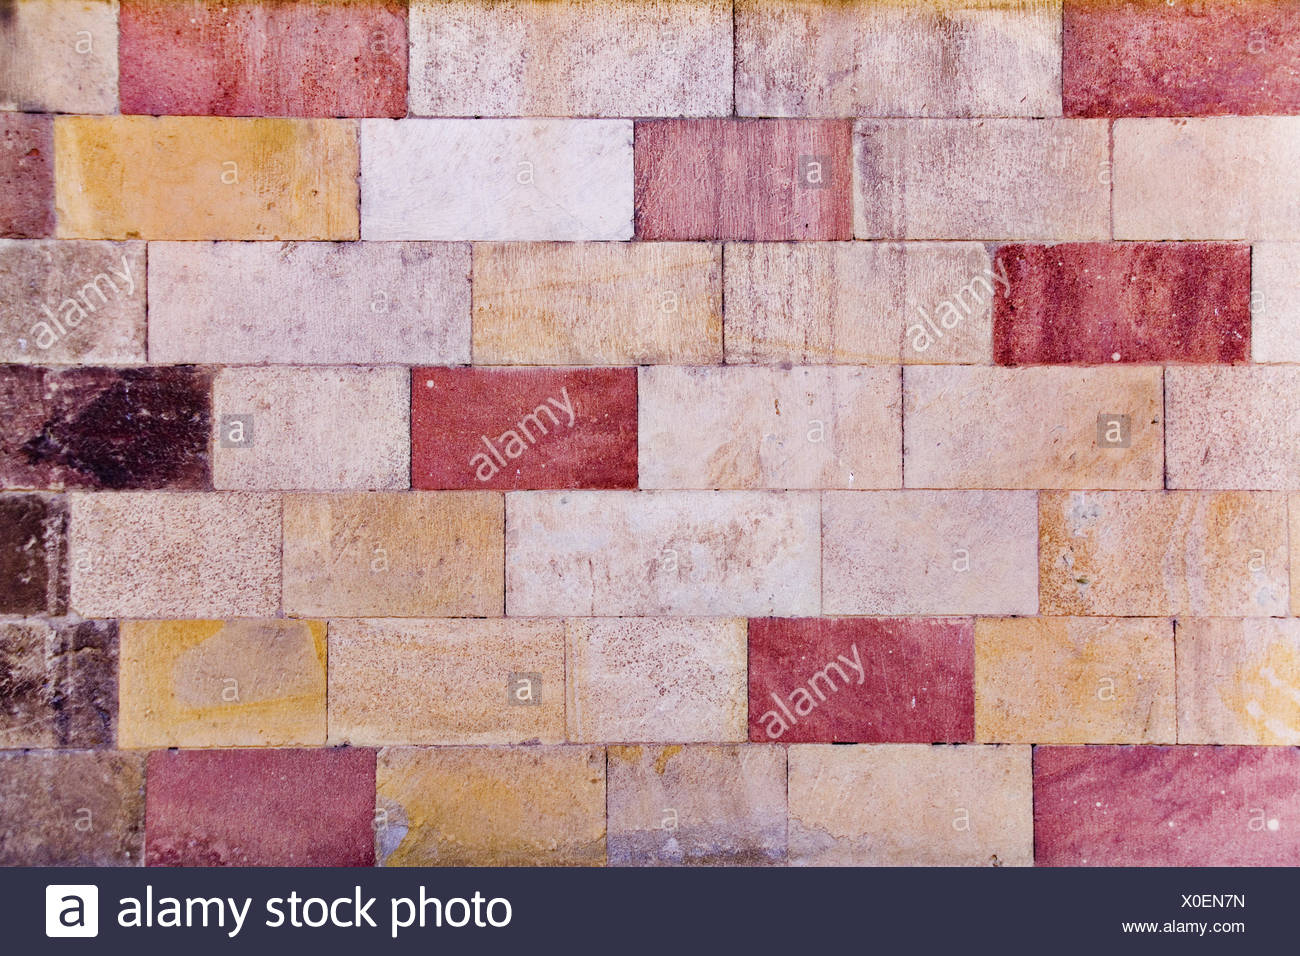 colorful stonewalls - Stock Image